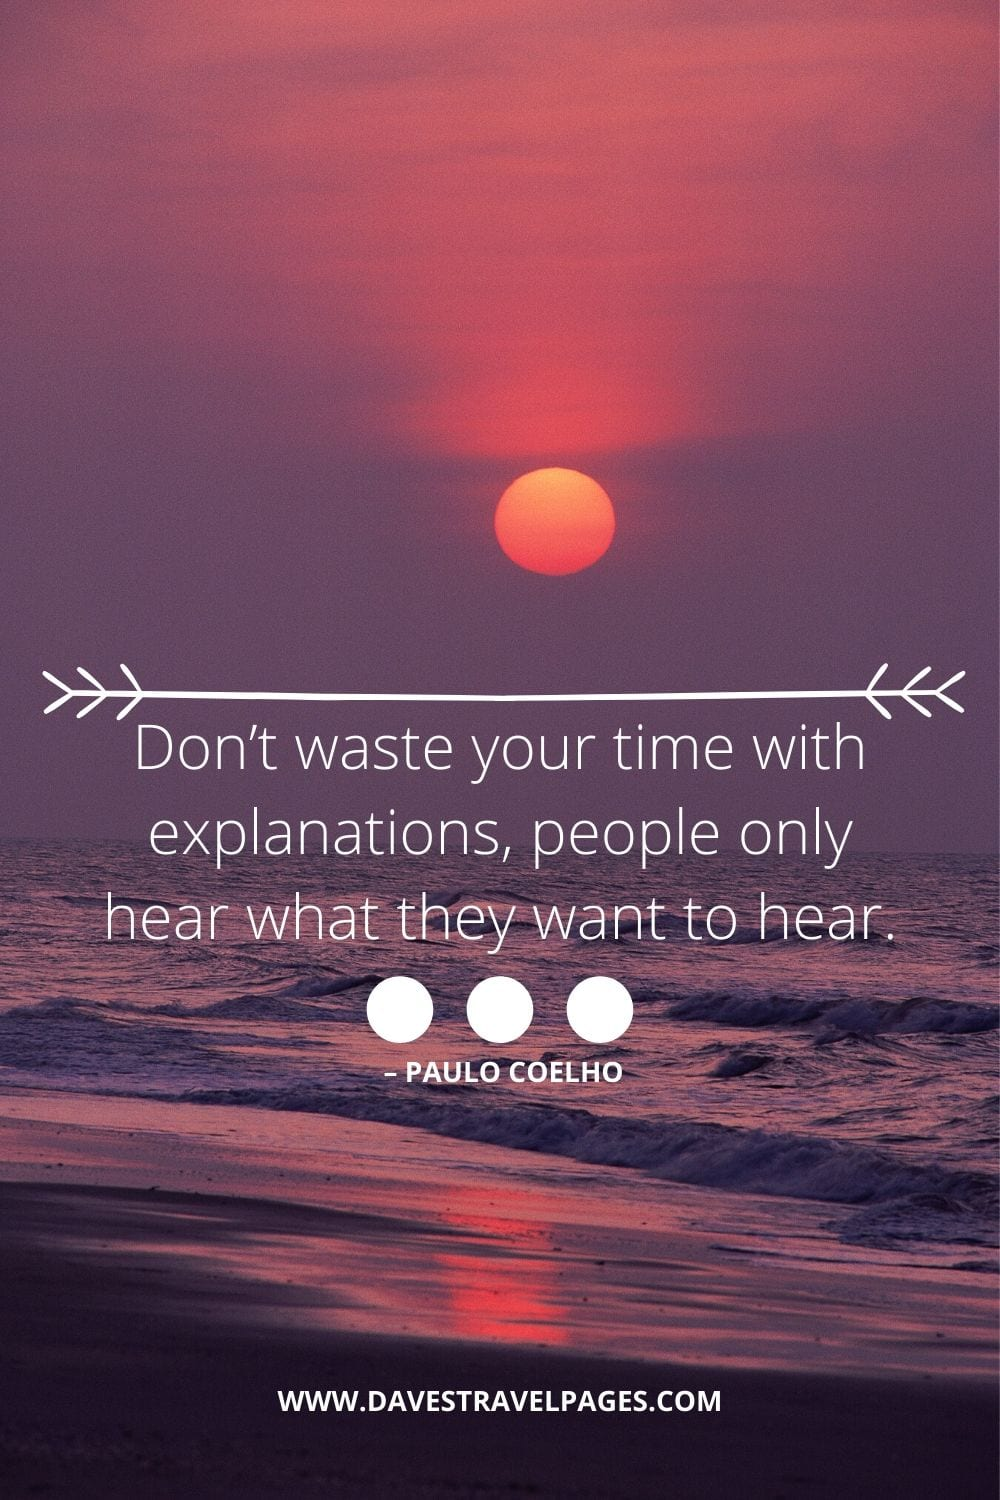 """Don't waste your time with explanations, people only hear what they want to hear."" – Paulo Coelho quotation"